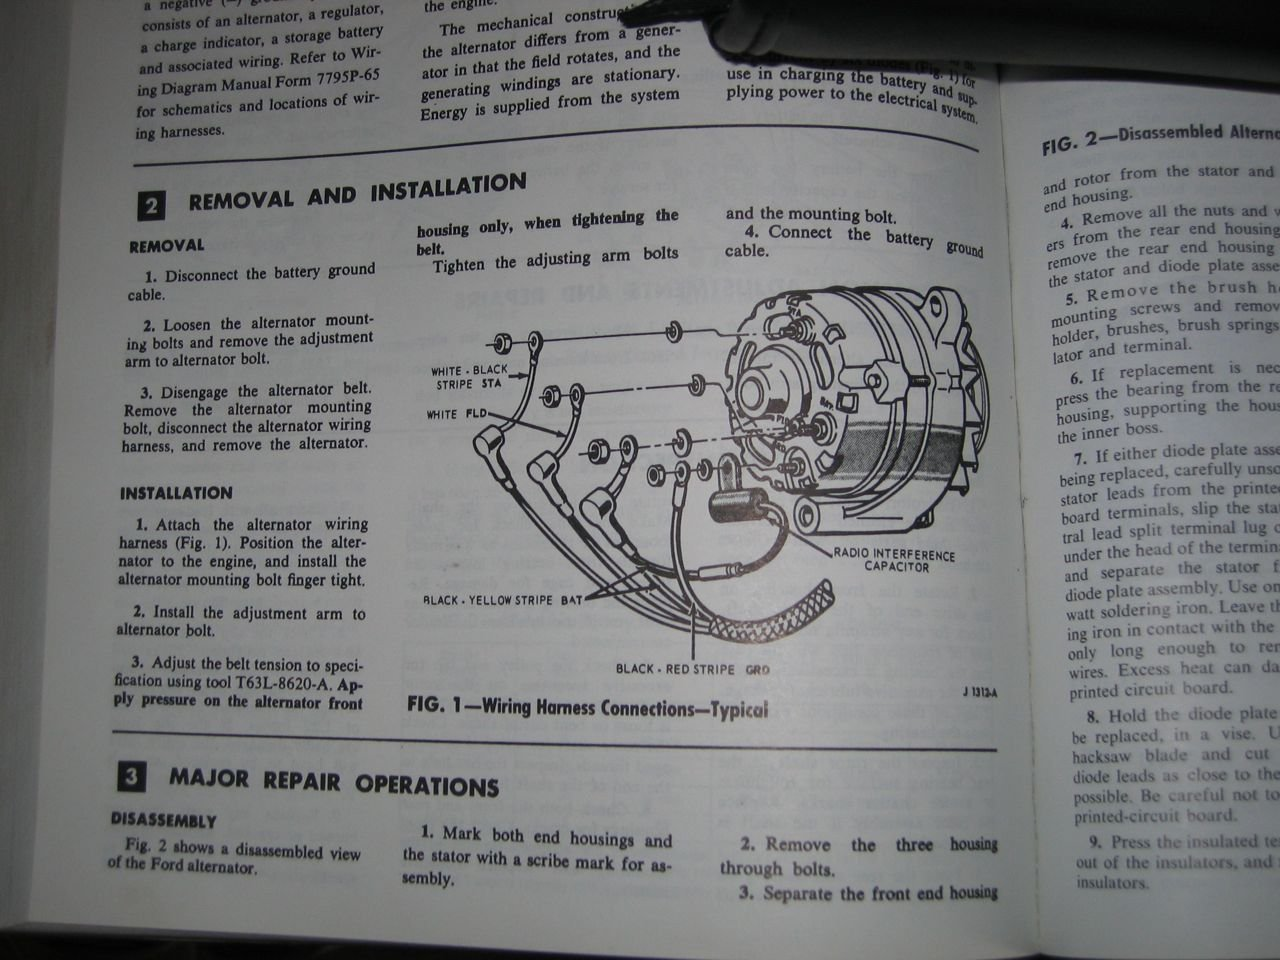 93328d1268767403 1966 mustang alternator wiring img_0749 1966 mustang alternator wiring ford mustang forum 1968 mustang alternator wiring diagram at webbmarketing.co